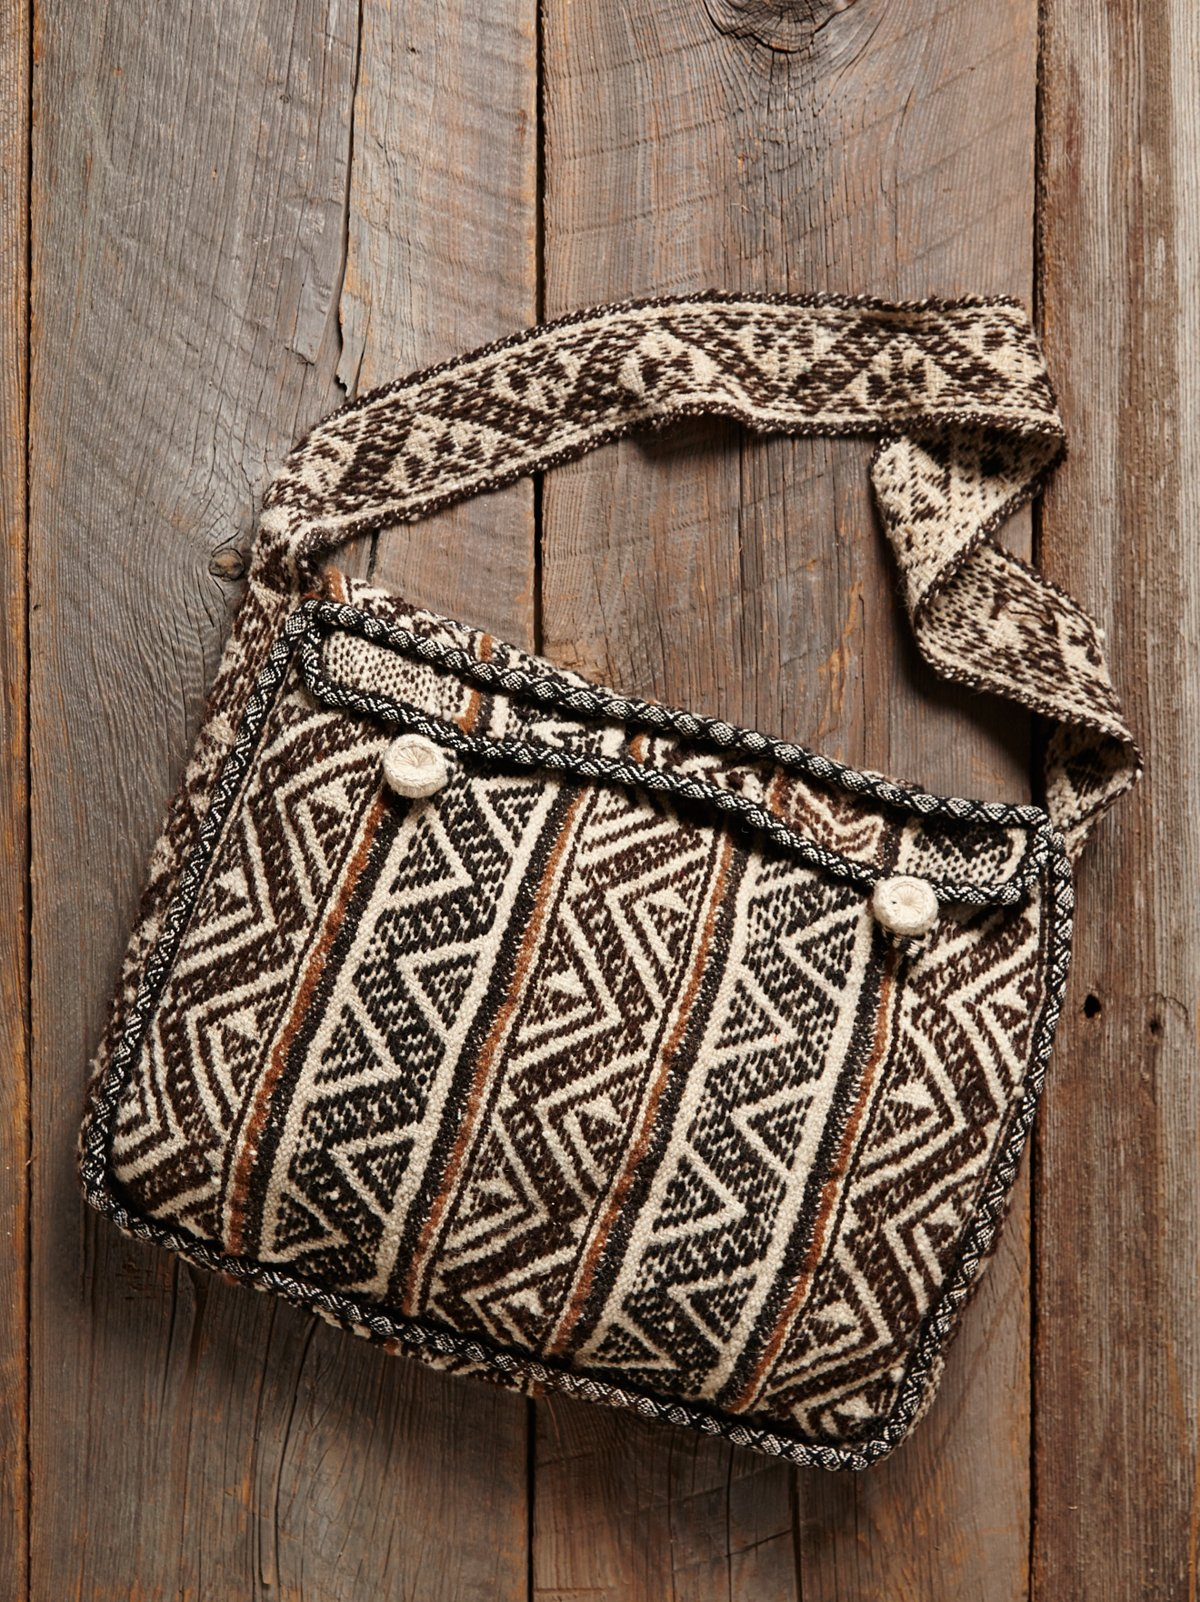 Vintage Woven Embroidered Bag